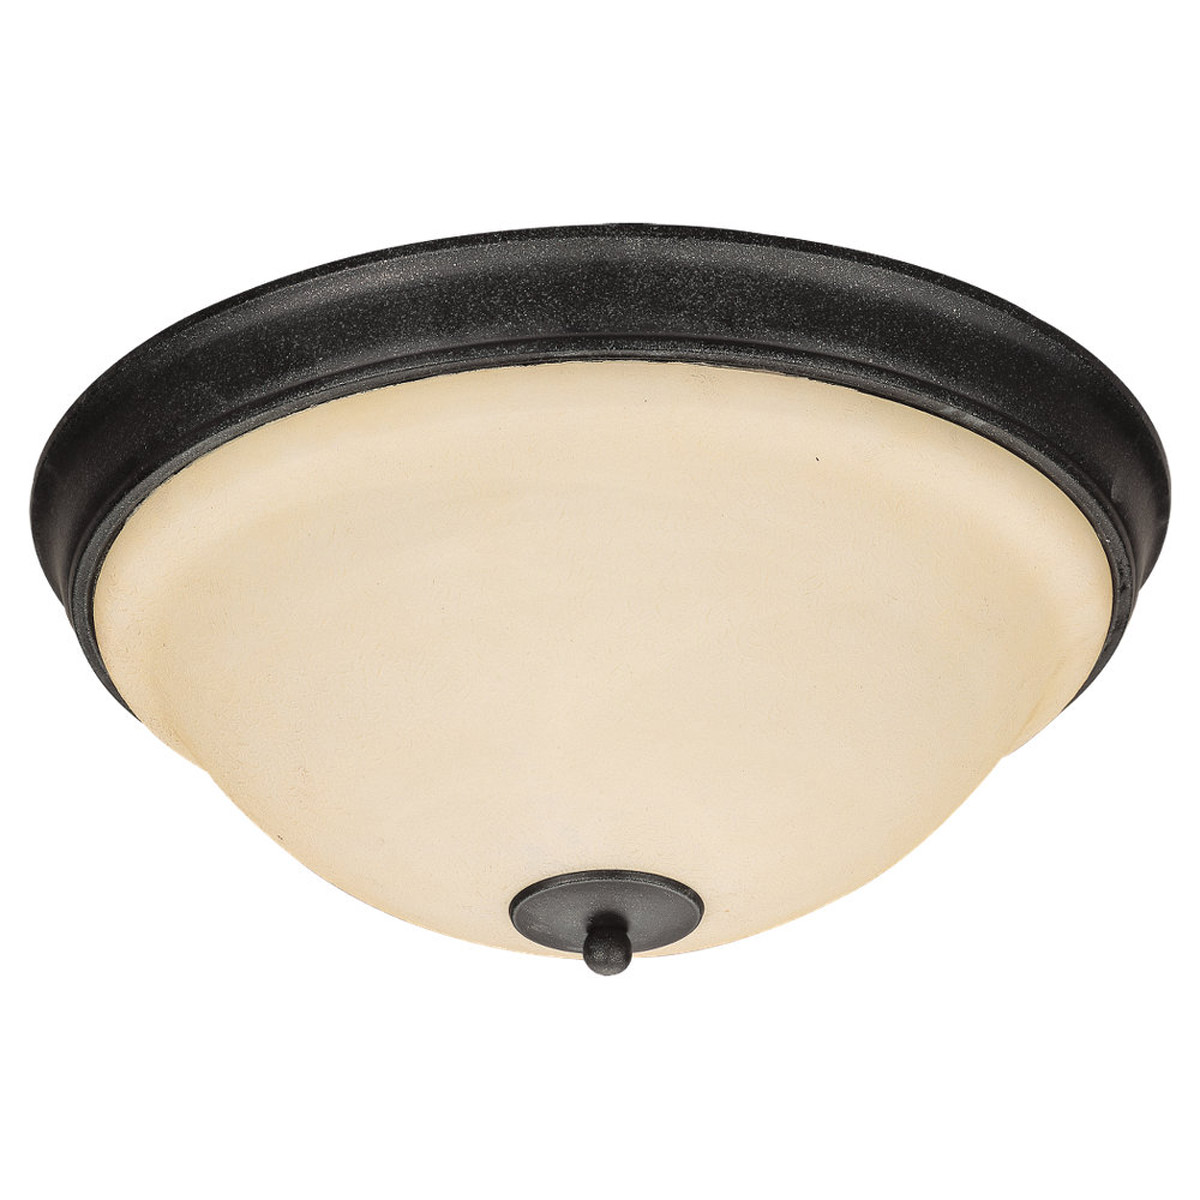 Sea Gull Lighting Serenity 3 Light Flush Mount in Weathered Iron 79158BLE-07 photo